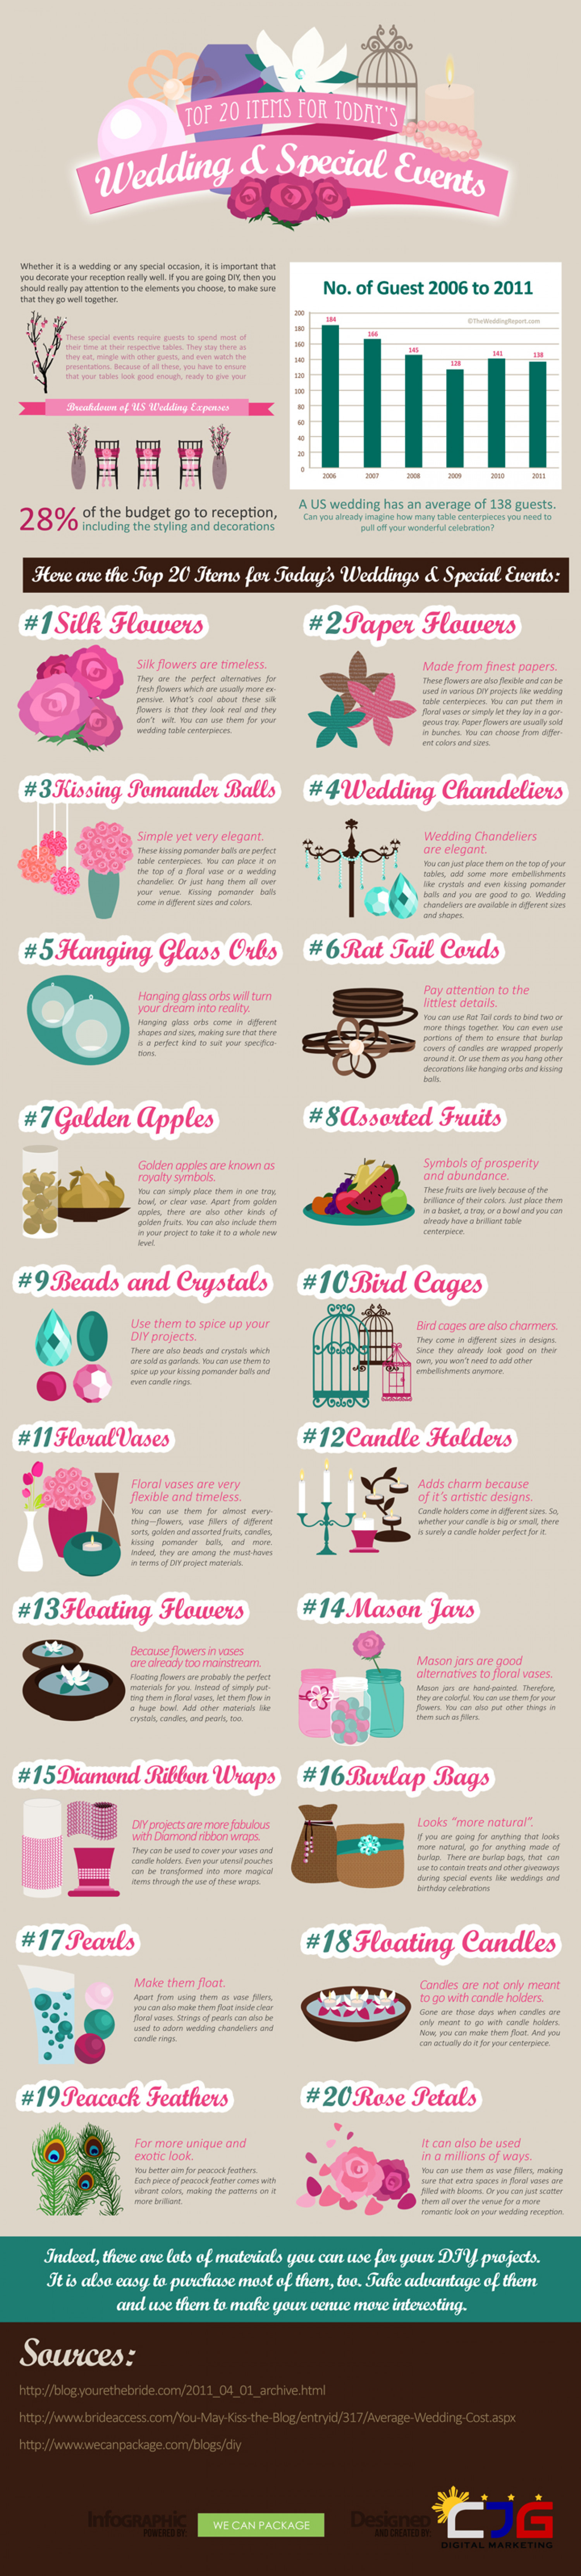 Top 20 Items For Today's Wedding And Special Events (Infographic)  Infographic